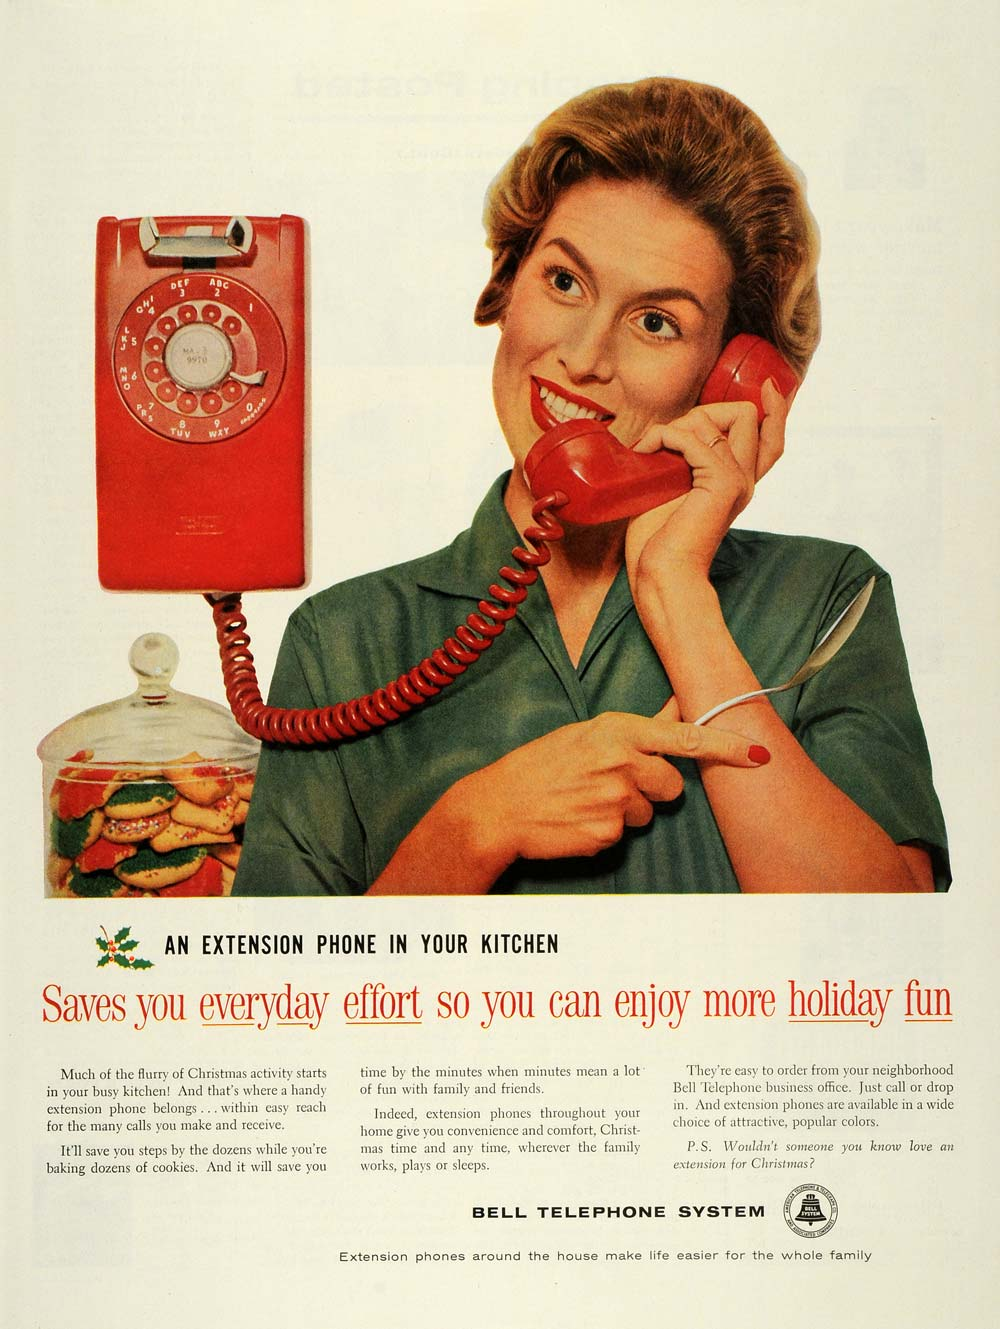 Kitchen Extension Phone Vintage Print Ad 1959 Bell Telephone